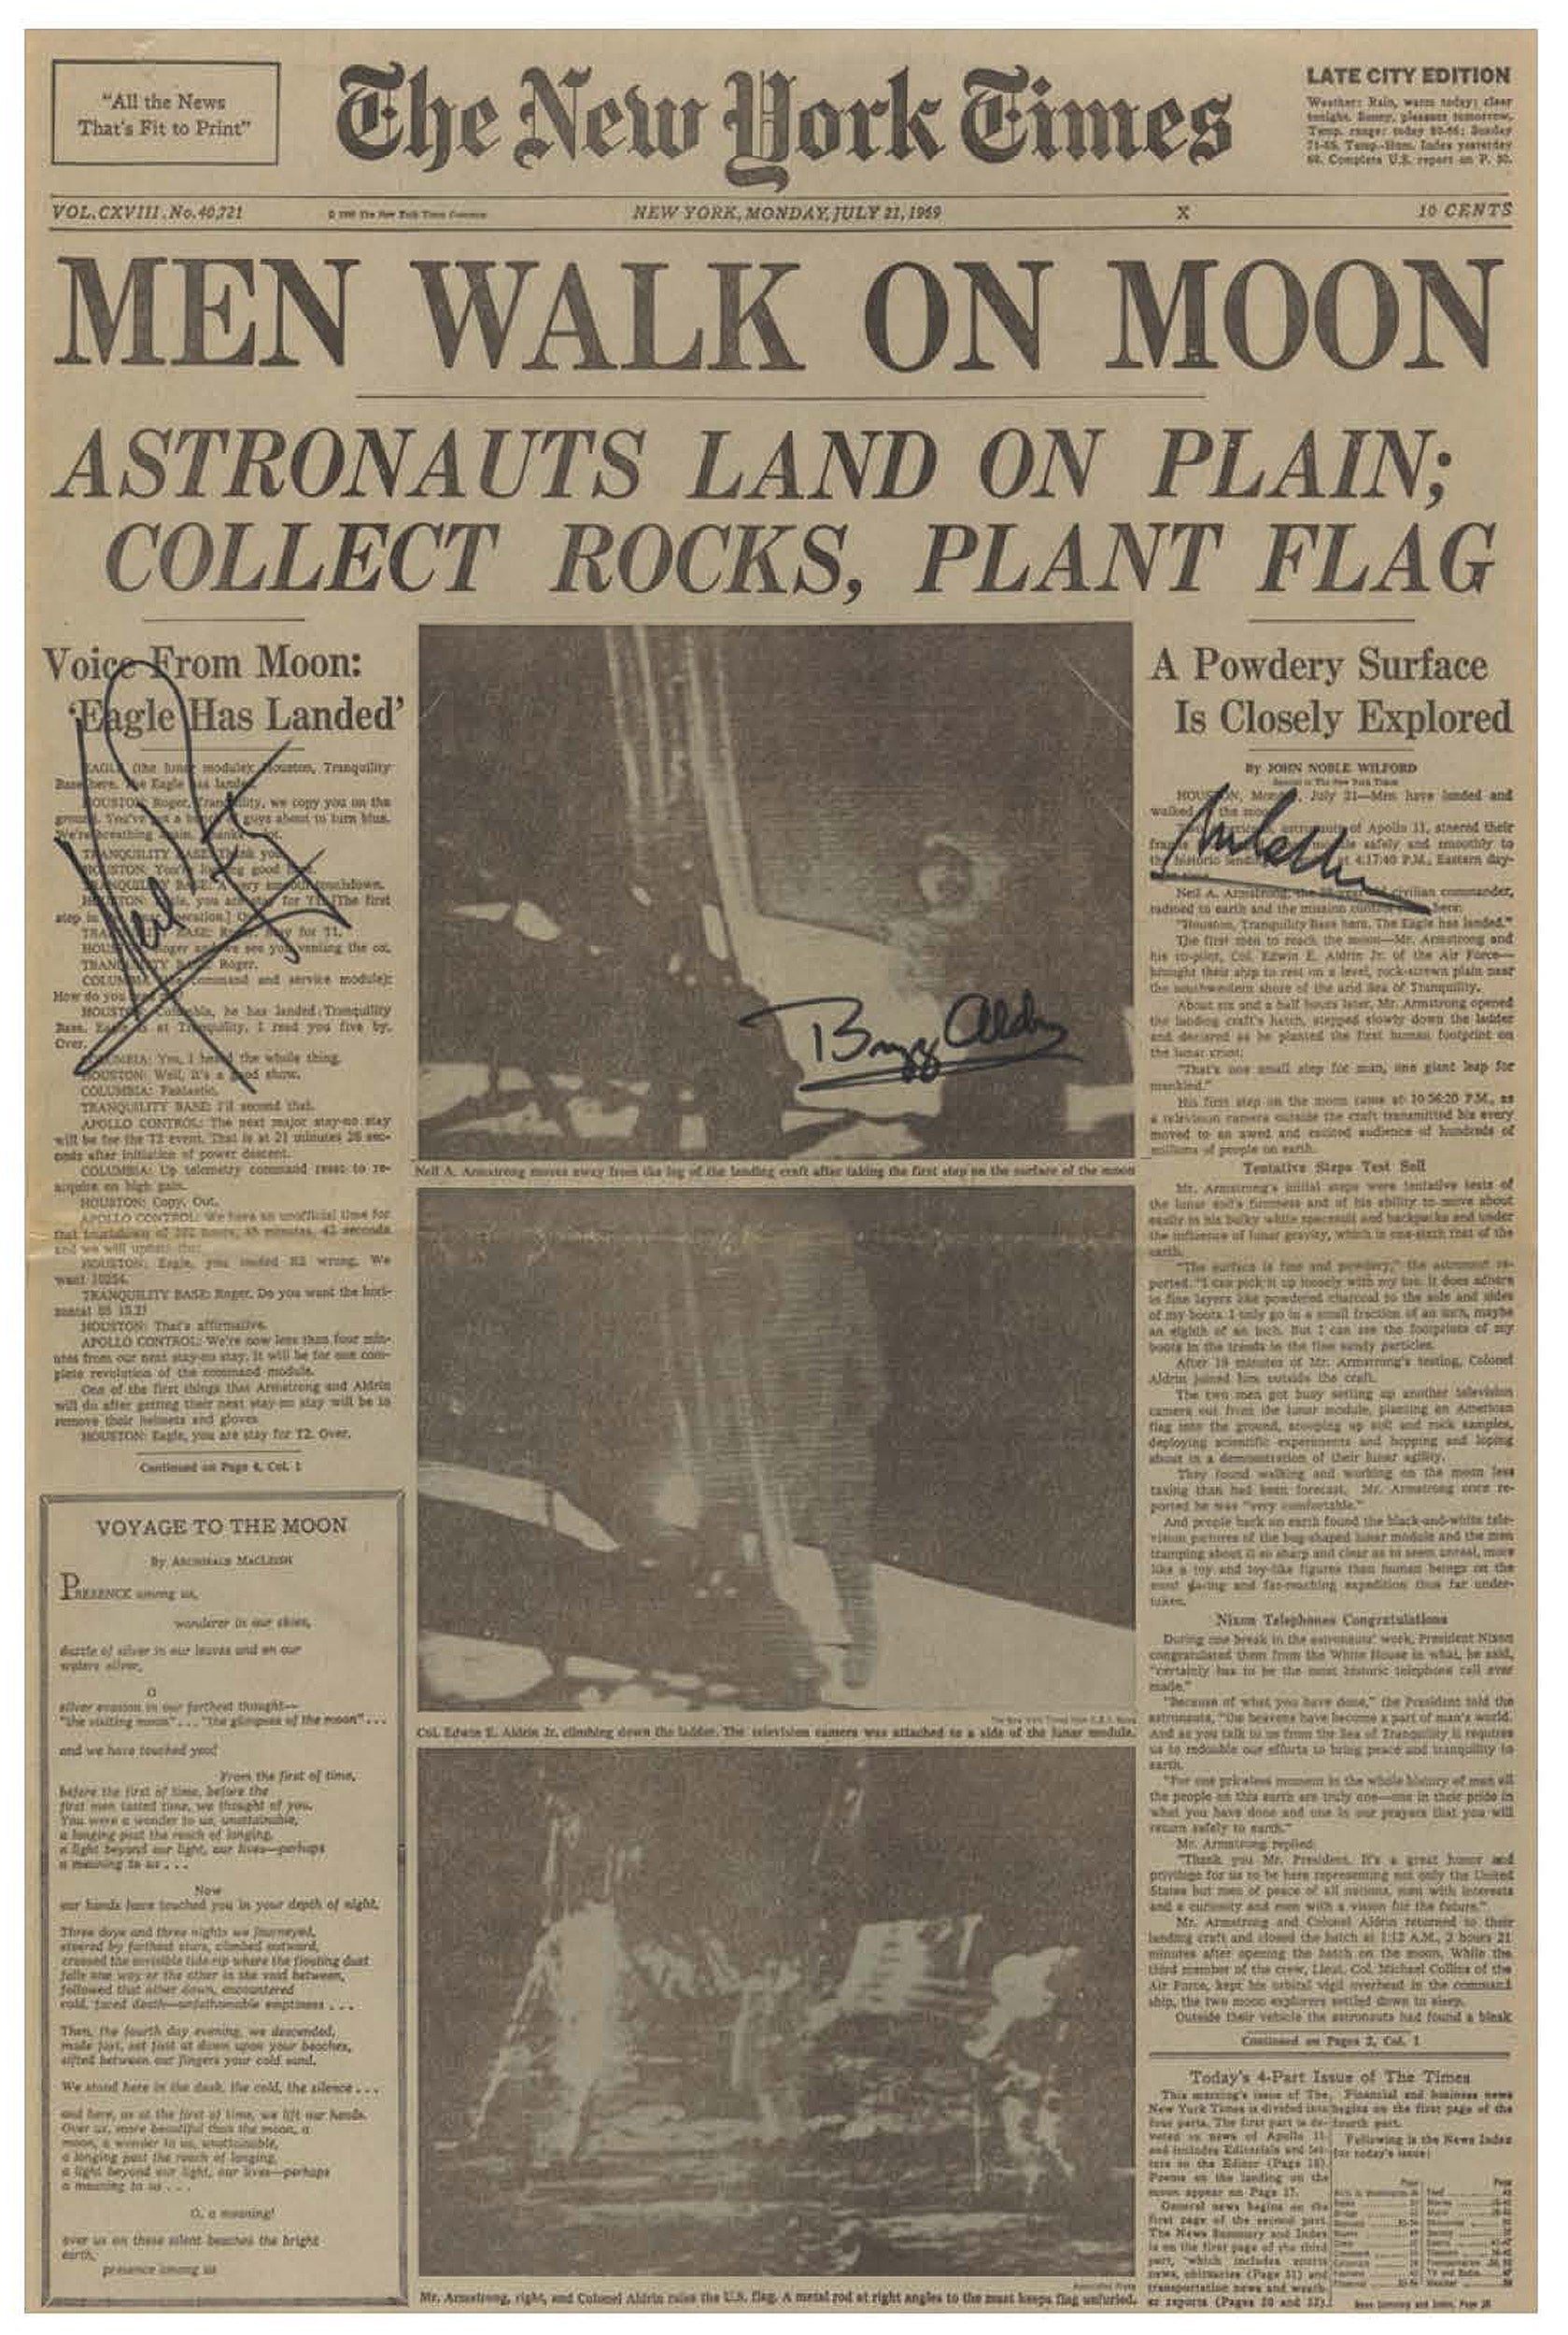 New York Times front page announcing moon landing with lead headline: MEN WALK ON MOON.